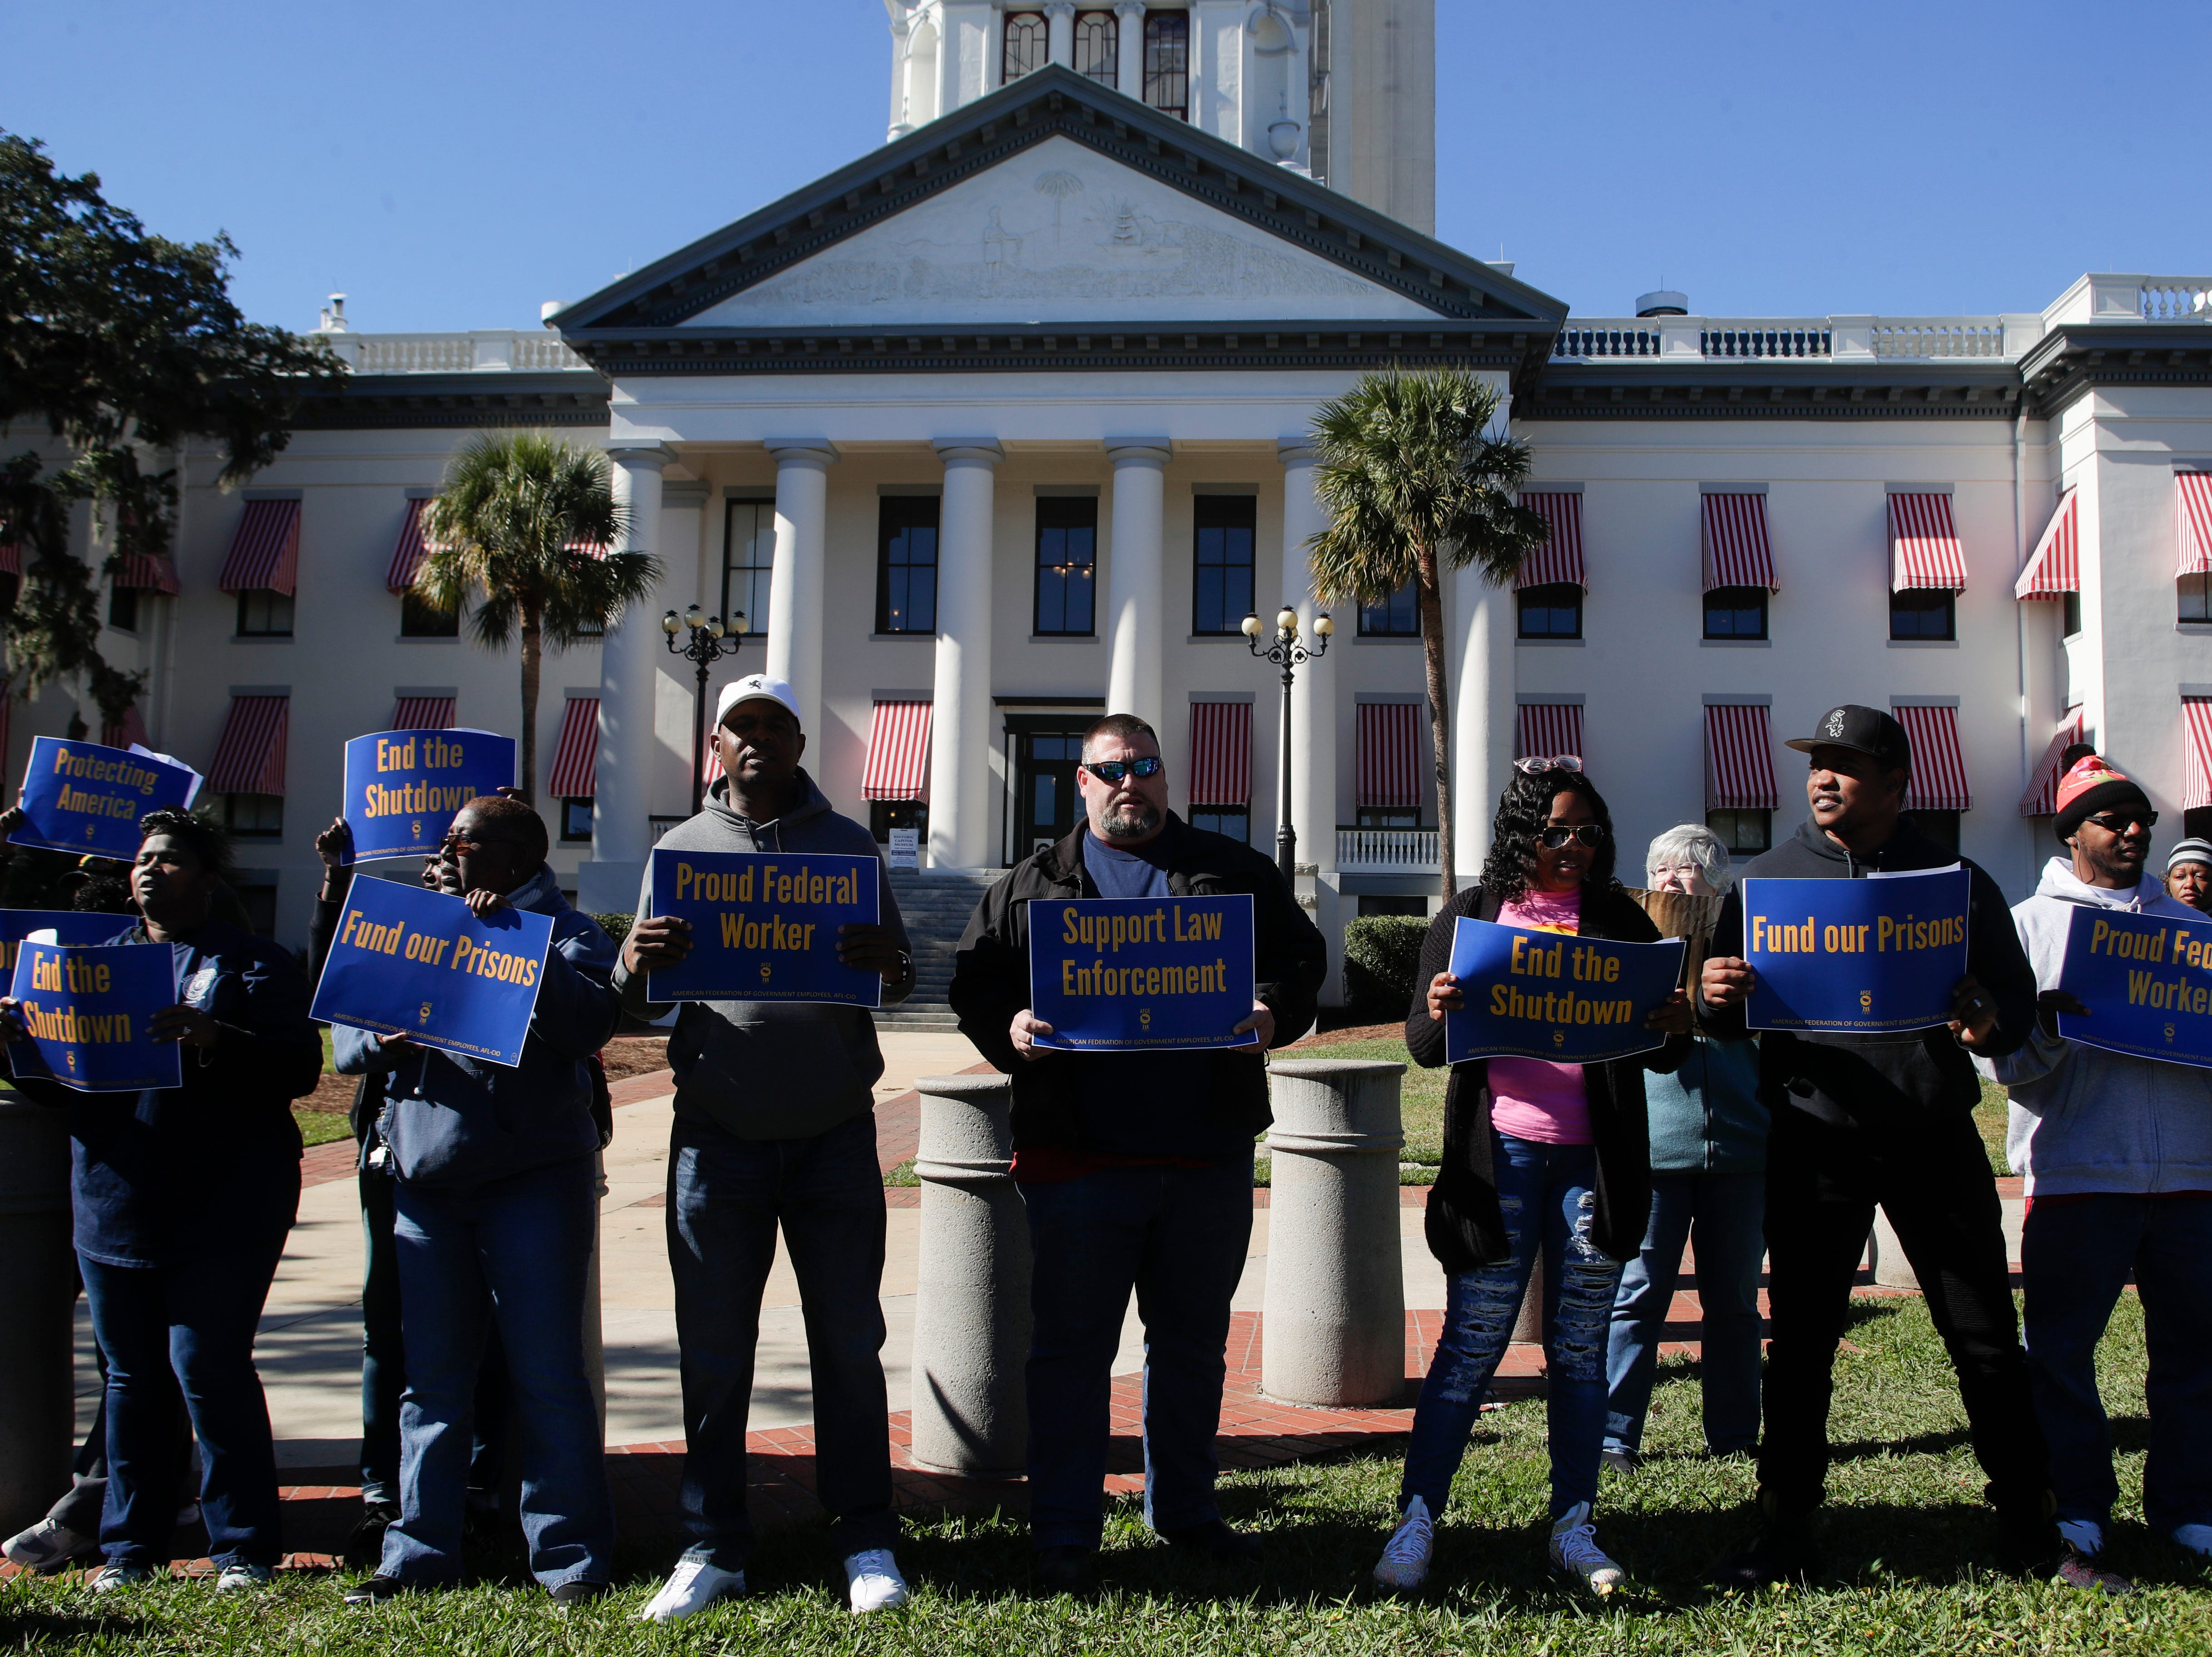 Federal workers rallied and marched from the American Federation of Labor and Congress of Industrial Organizations (AFL-CIO) building in Tallahassee to the Florida Historic Capitol in protest of the government shutdown Thursday, Jan. 10, 2019.